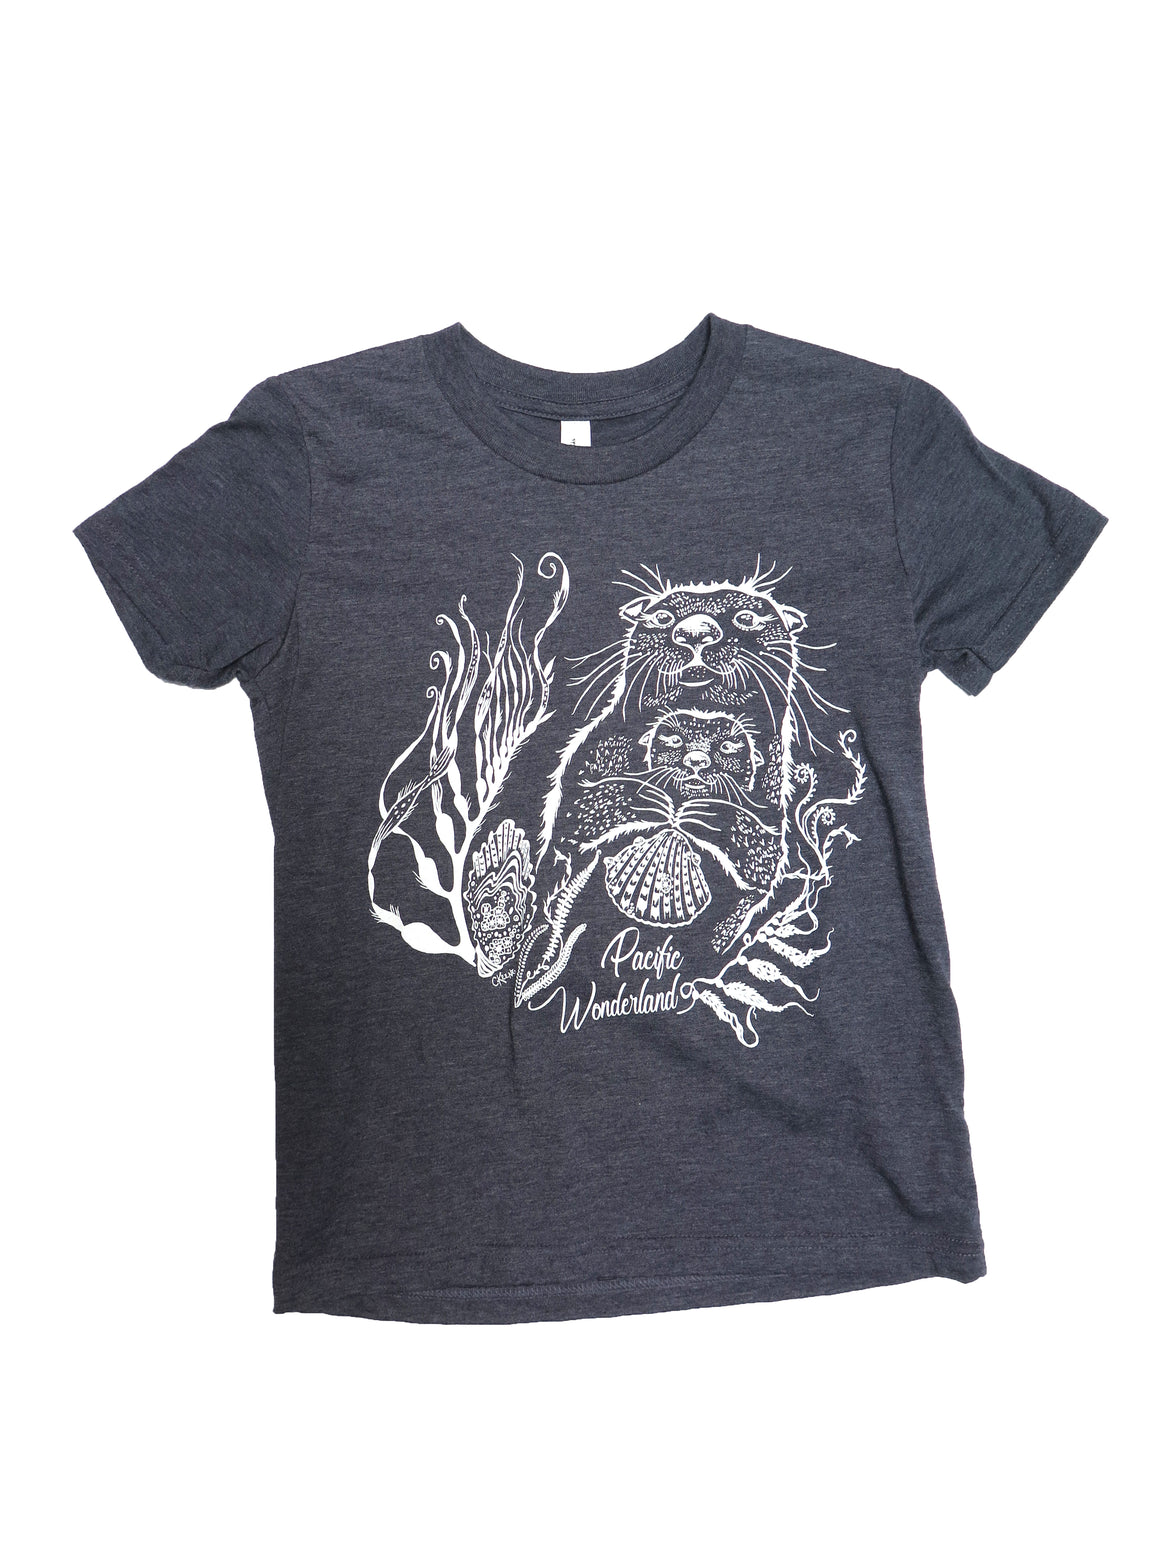 Sea Otter Youth Tee - Wanderlust + Wildhearts